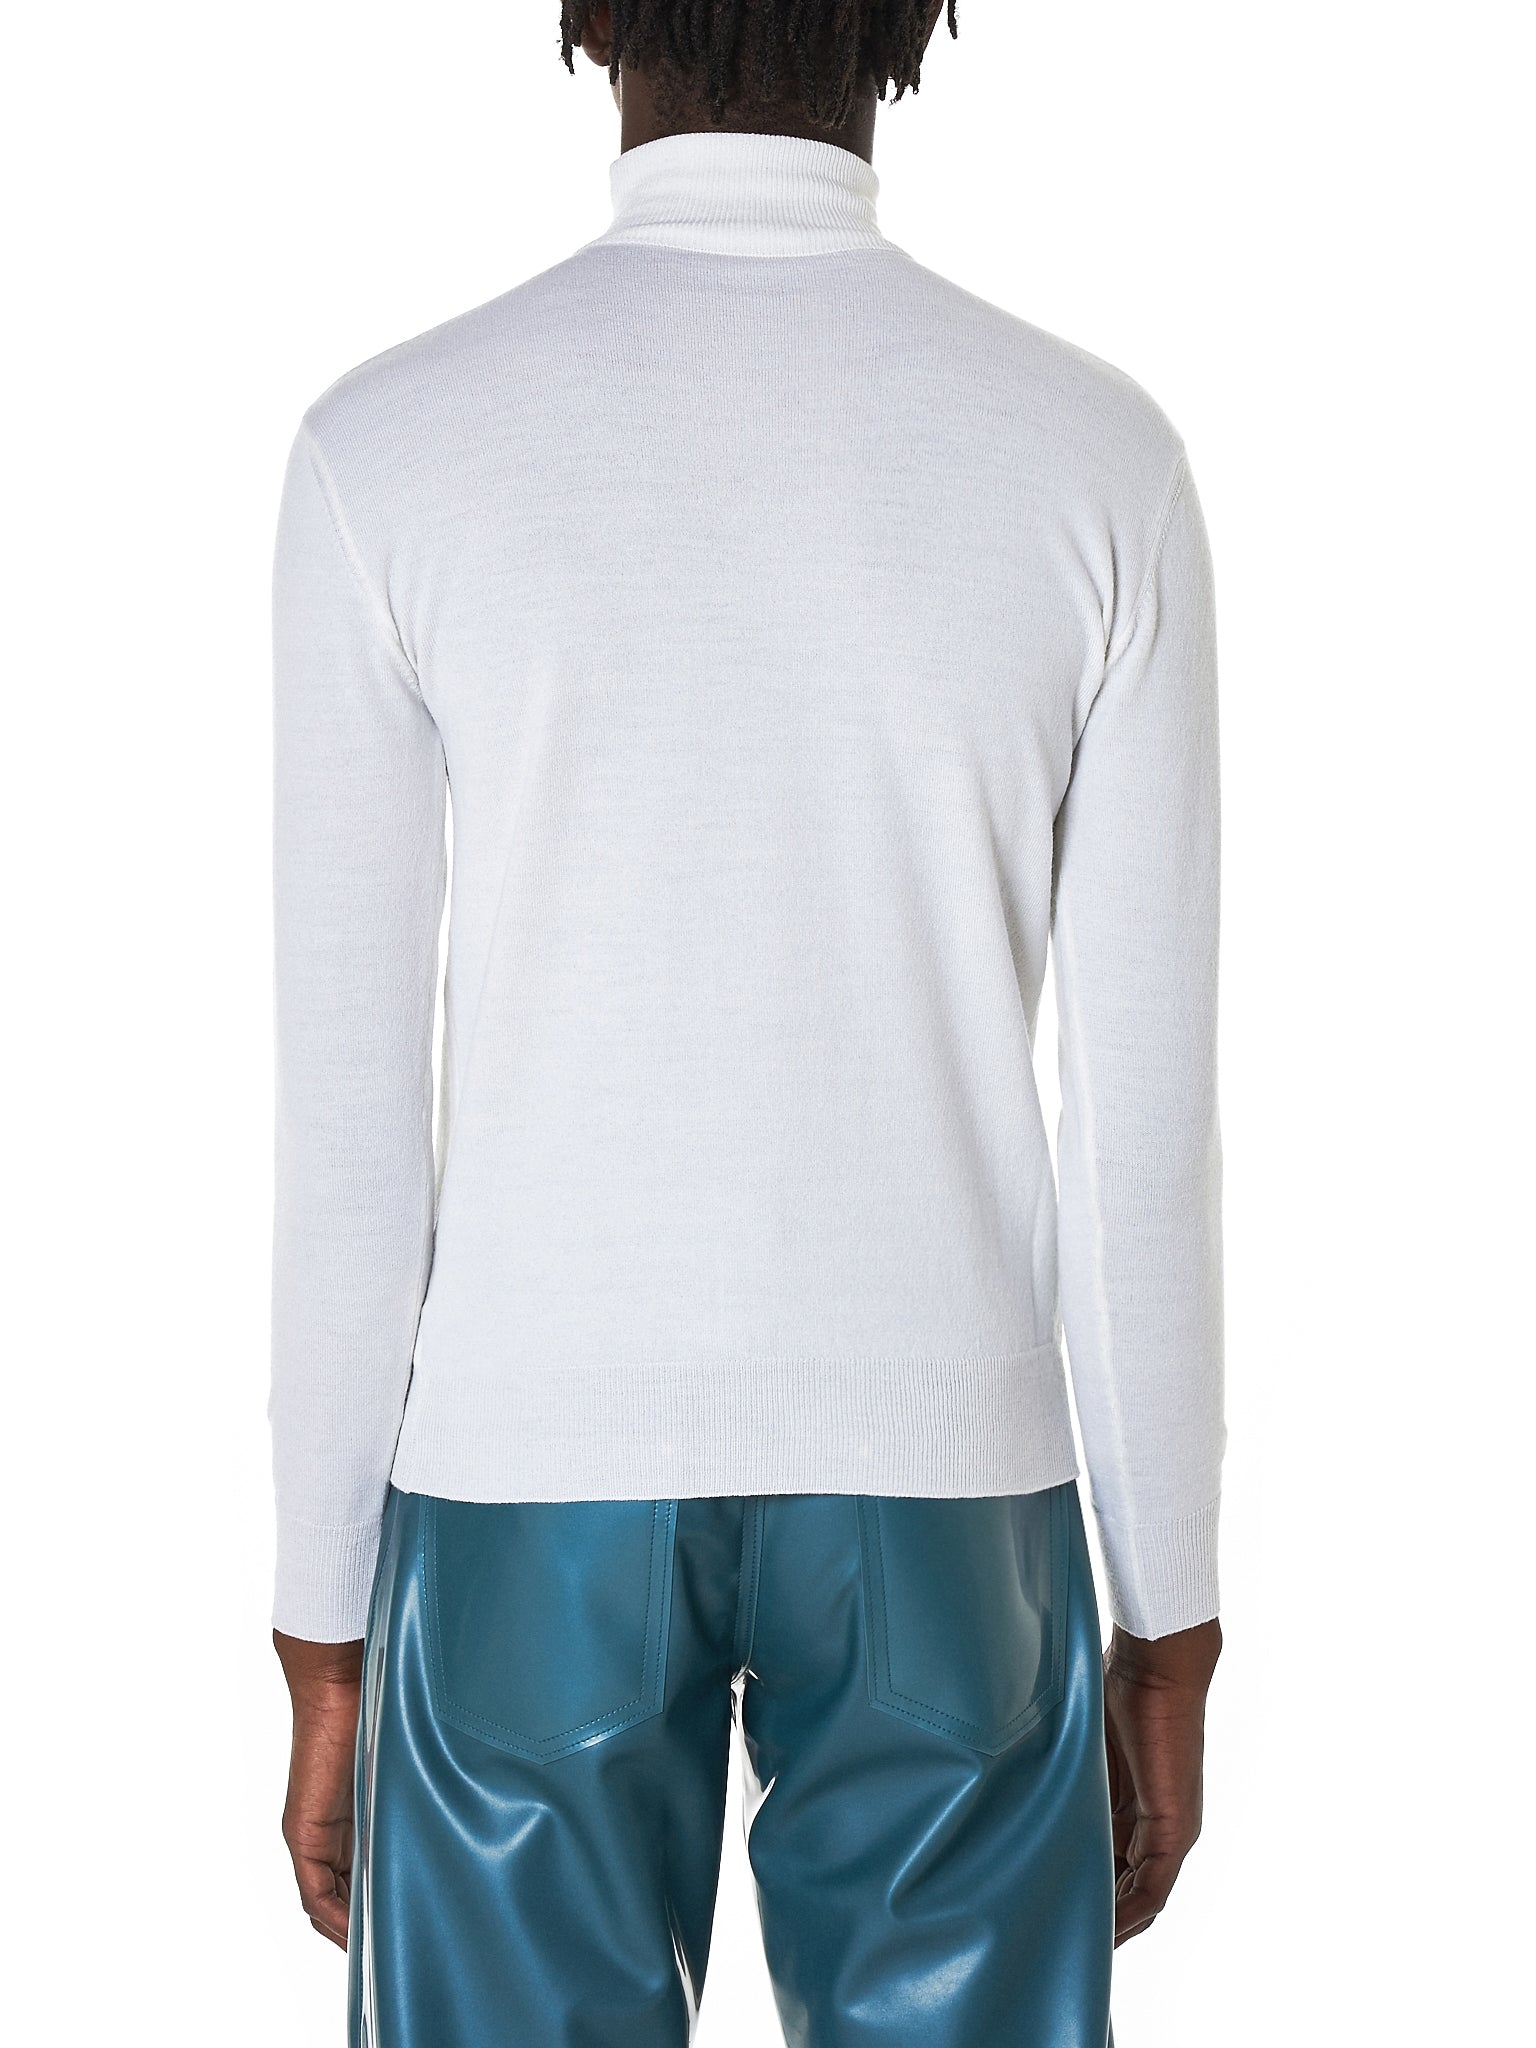 Raf Simons Sweater - Hlorenzo Back